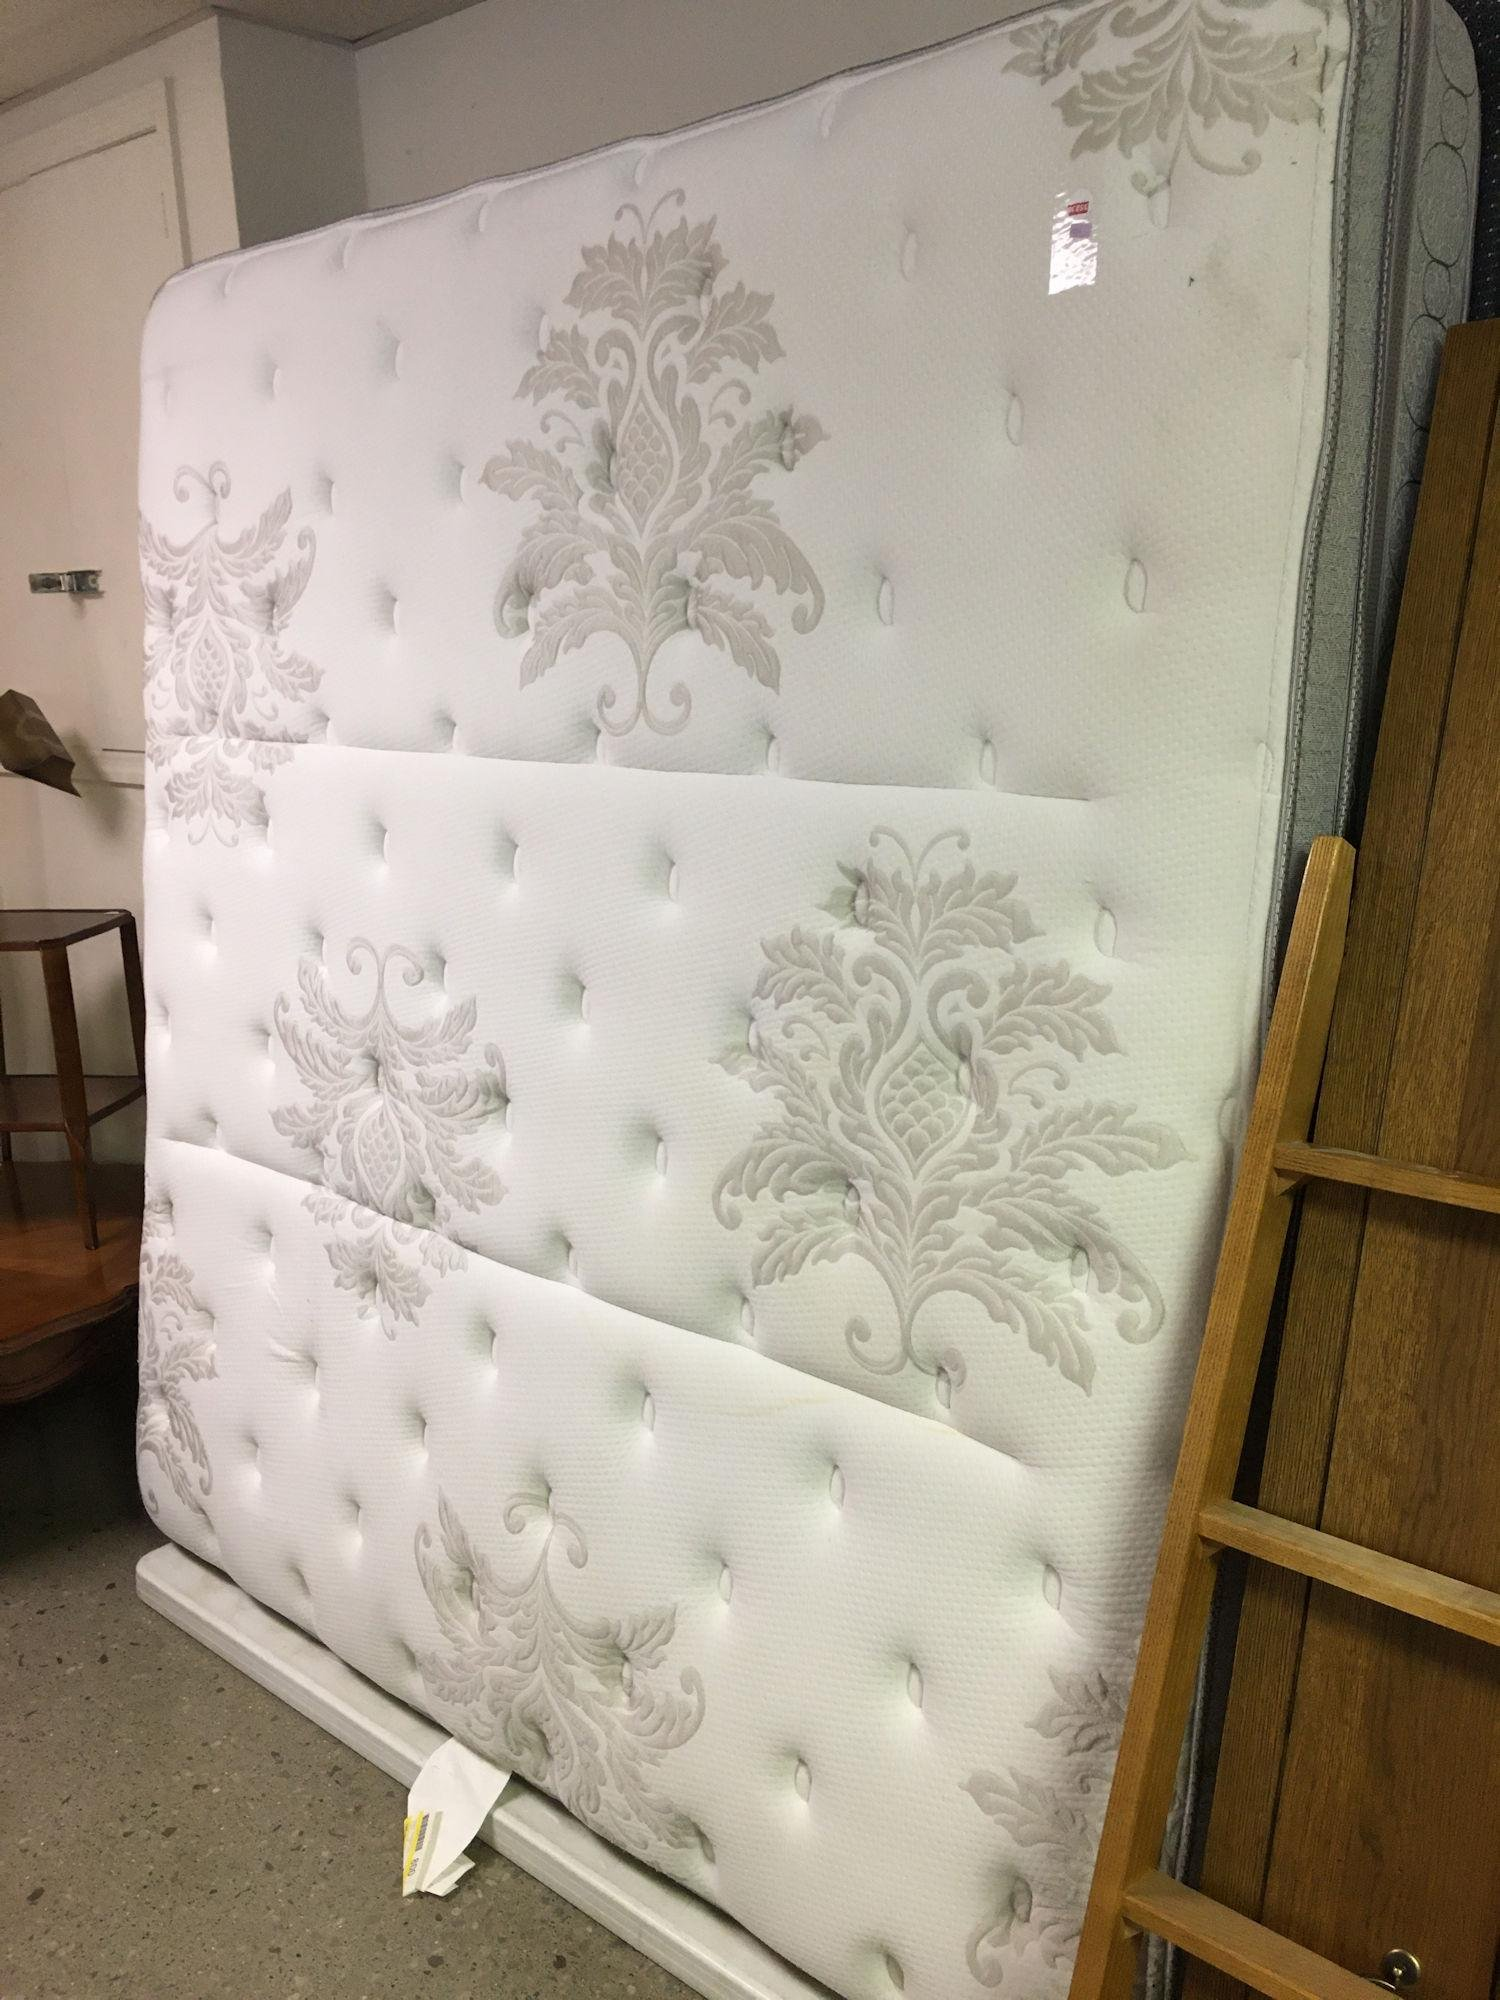 KING SIZE MATTRESS, HAS SOME STAINING